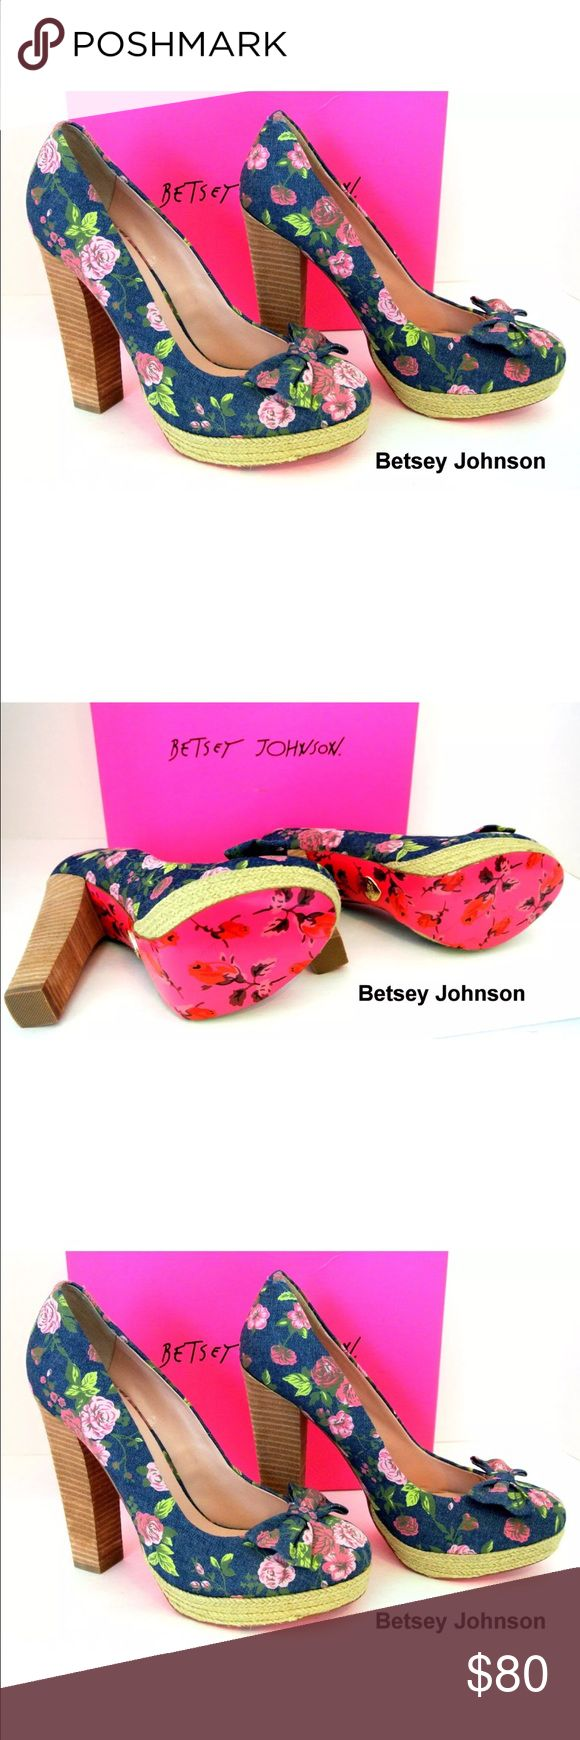 Betsey Johnson Pink Floral Denim Heel Platforms 10 Betsey Johnson Pink Floral Denim Heel Platforms SZ 10, Box not included. Betsey Johnson Shoes Platforms